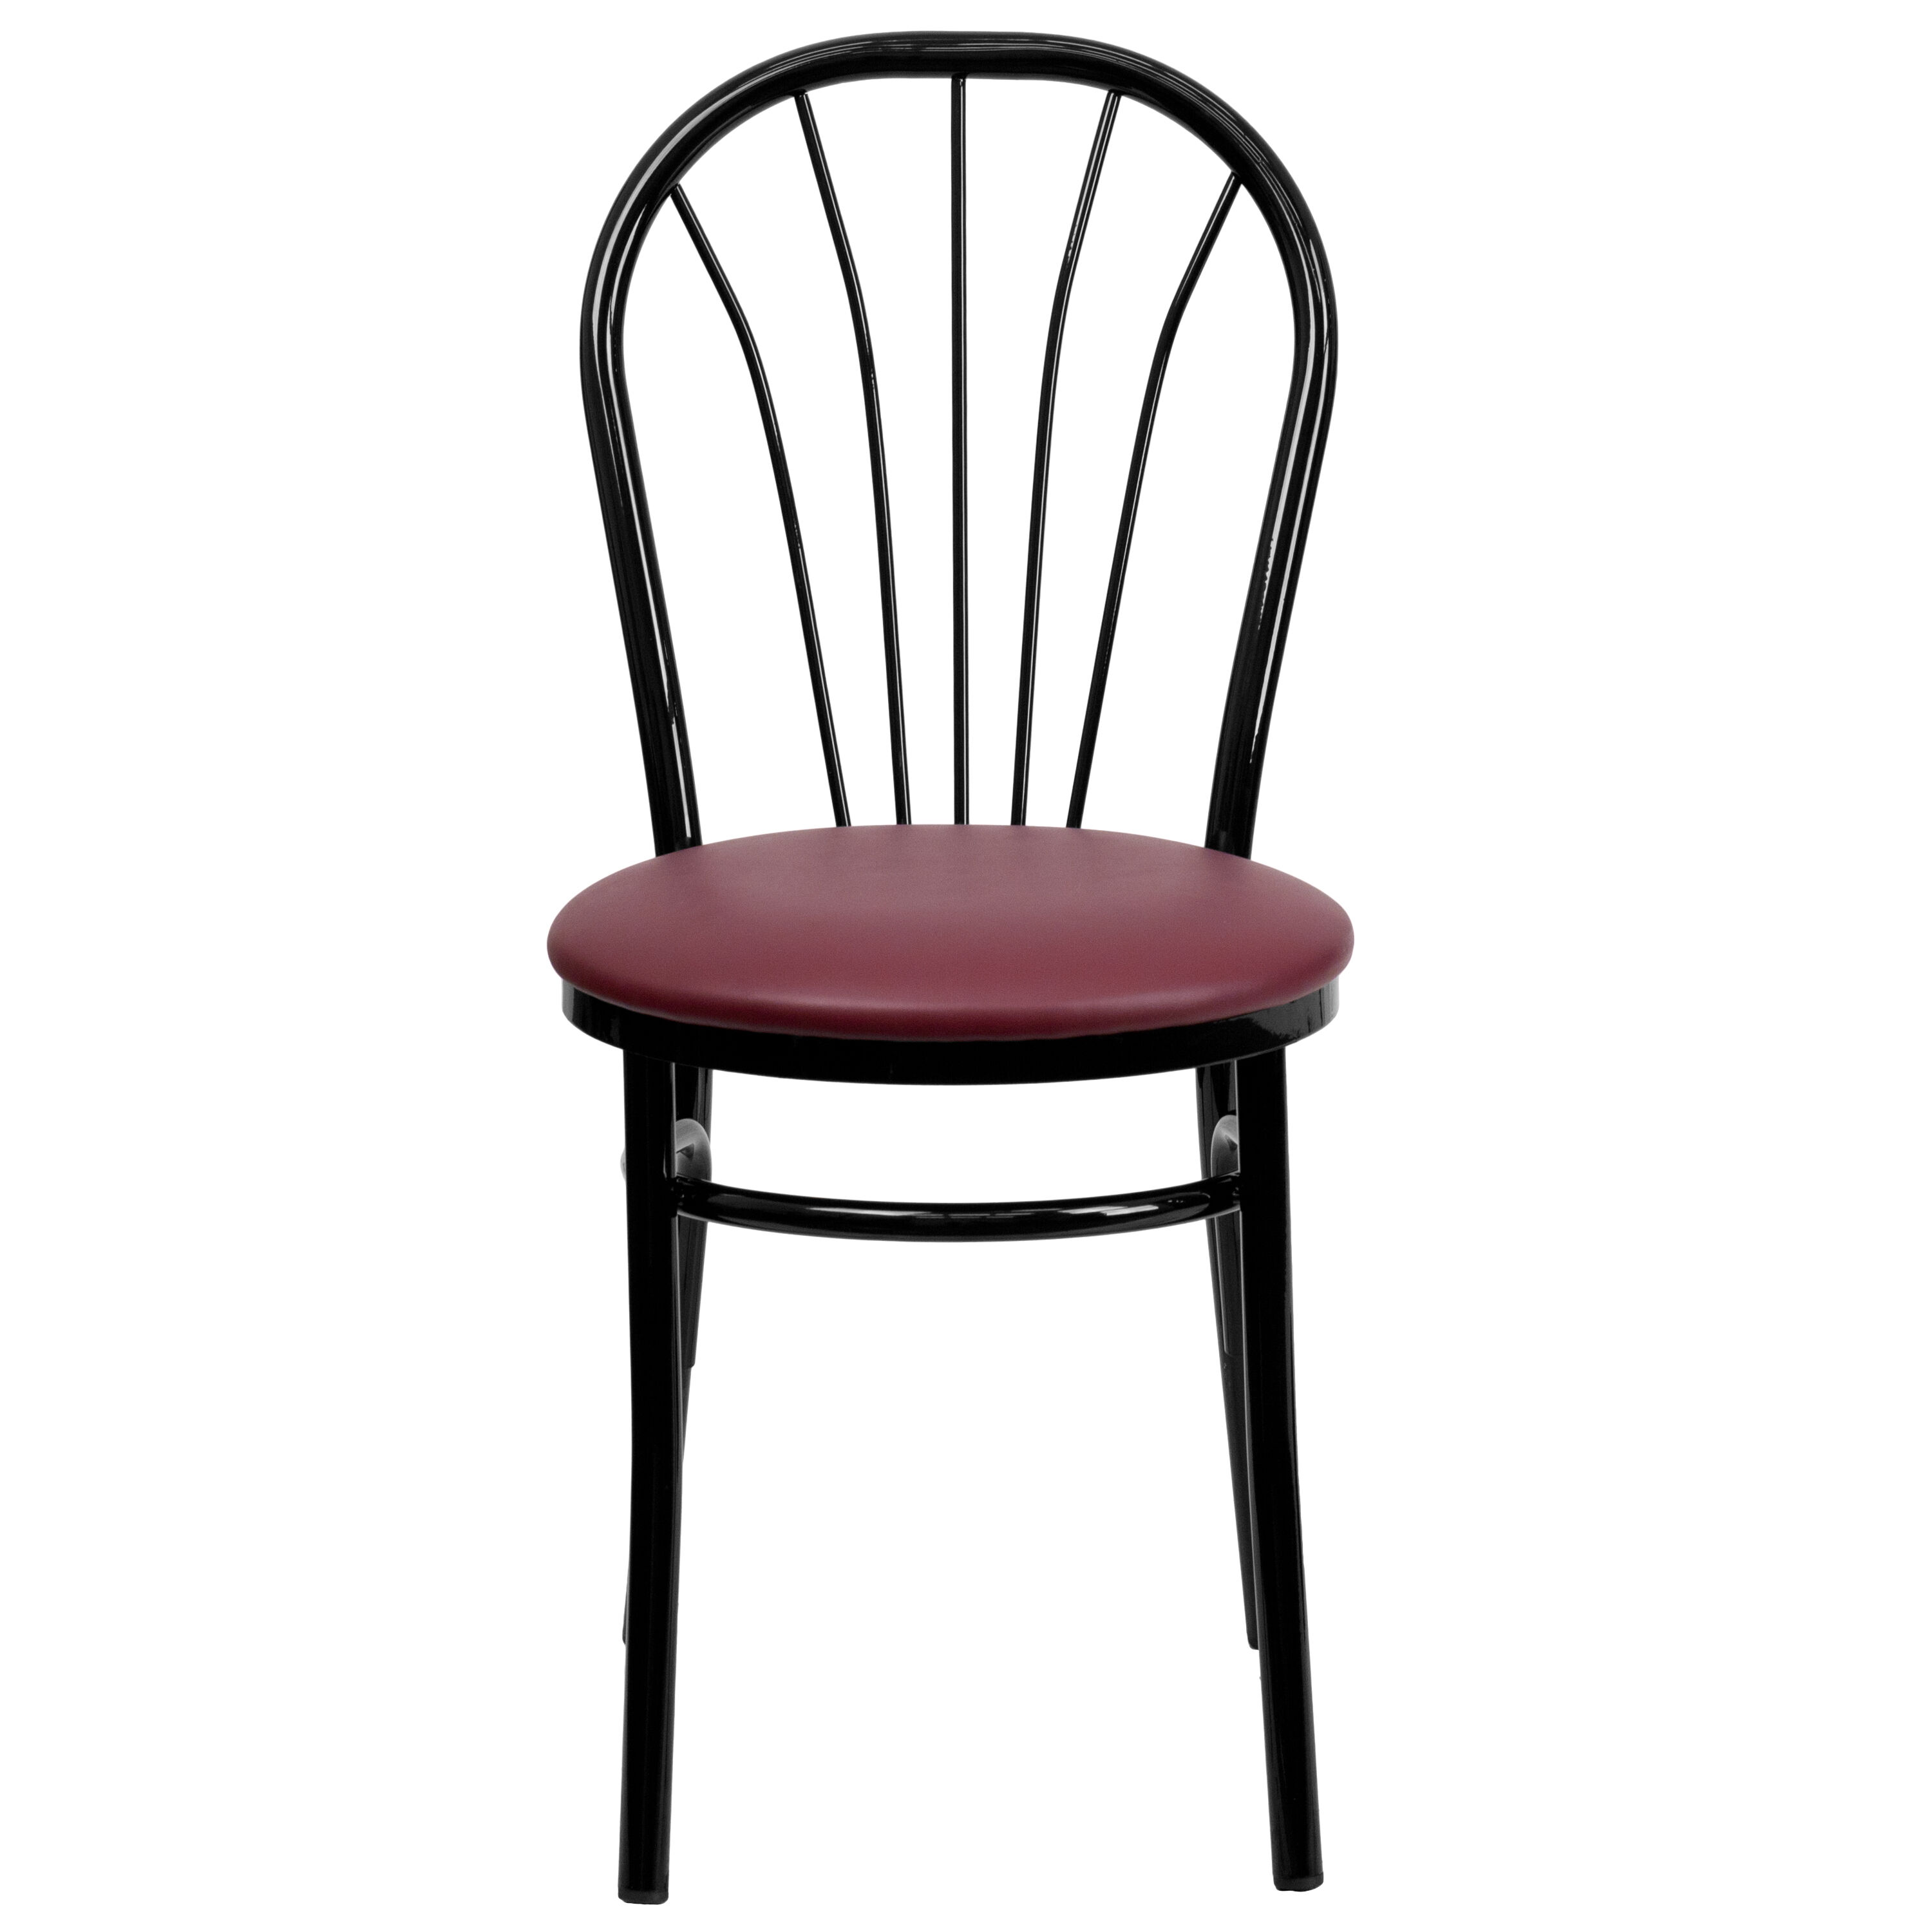 Restaurant Chairs Black Fan Chair Burg Seat Bfdh 706698 By Tdr